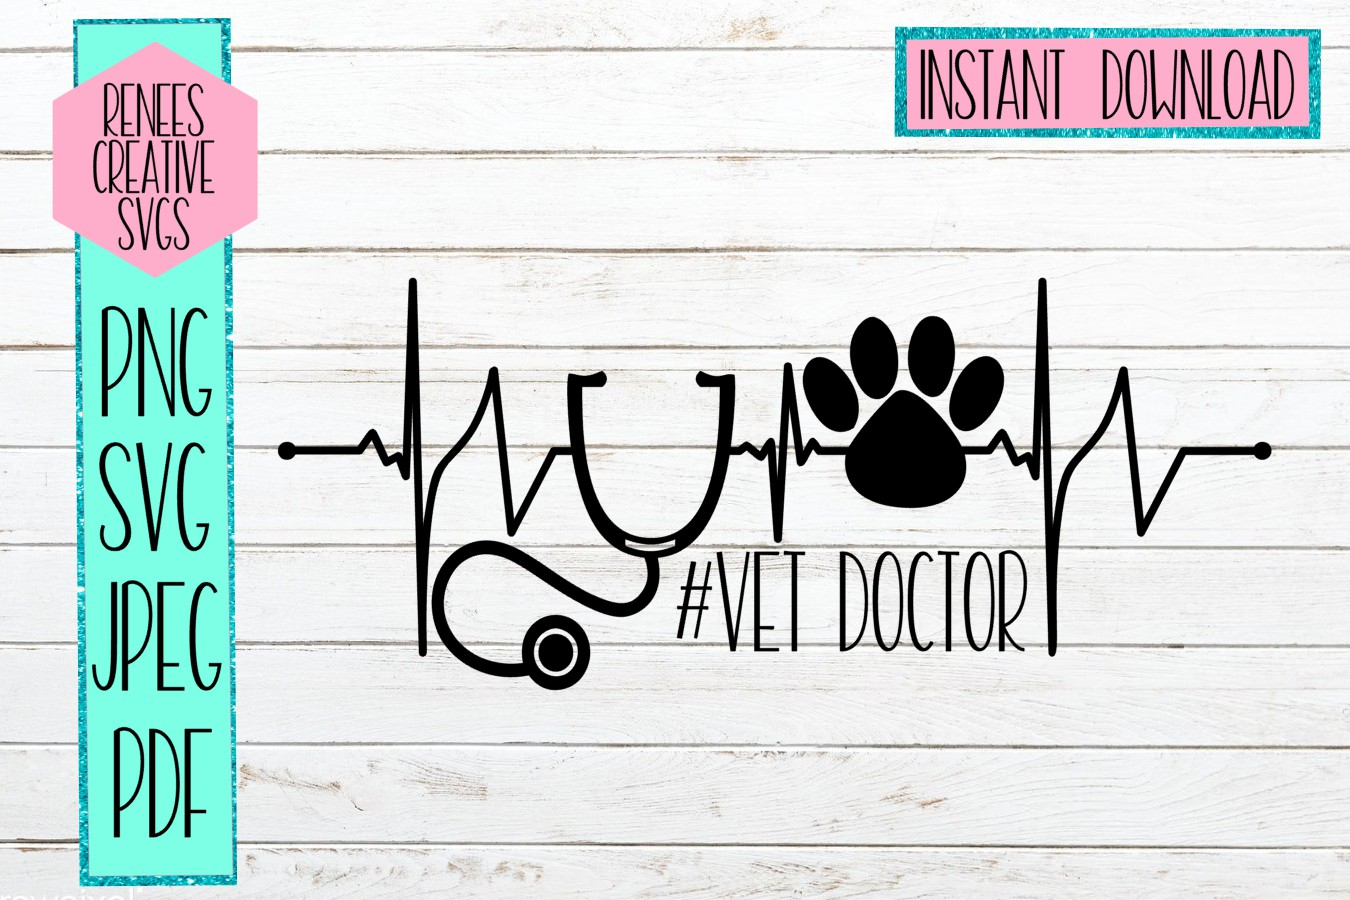 VetDoctor   Veterinary Doctor  SVG Cutting File example image 1